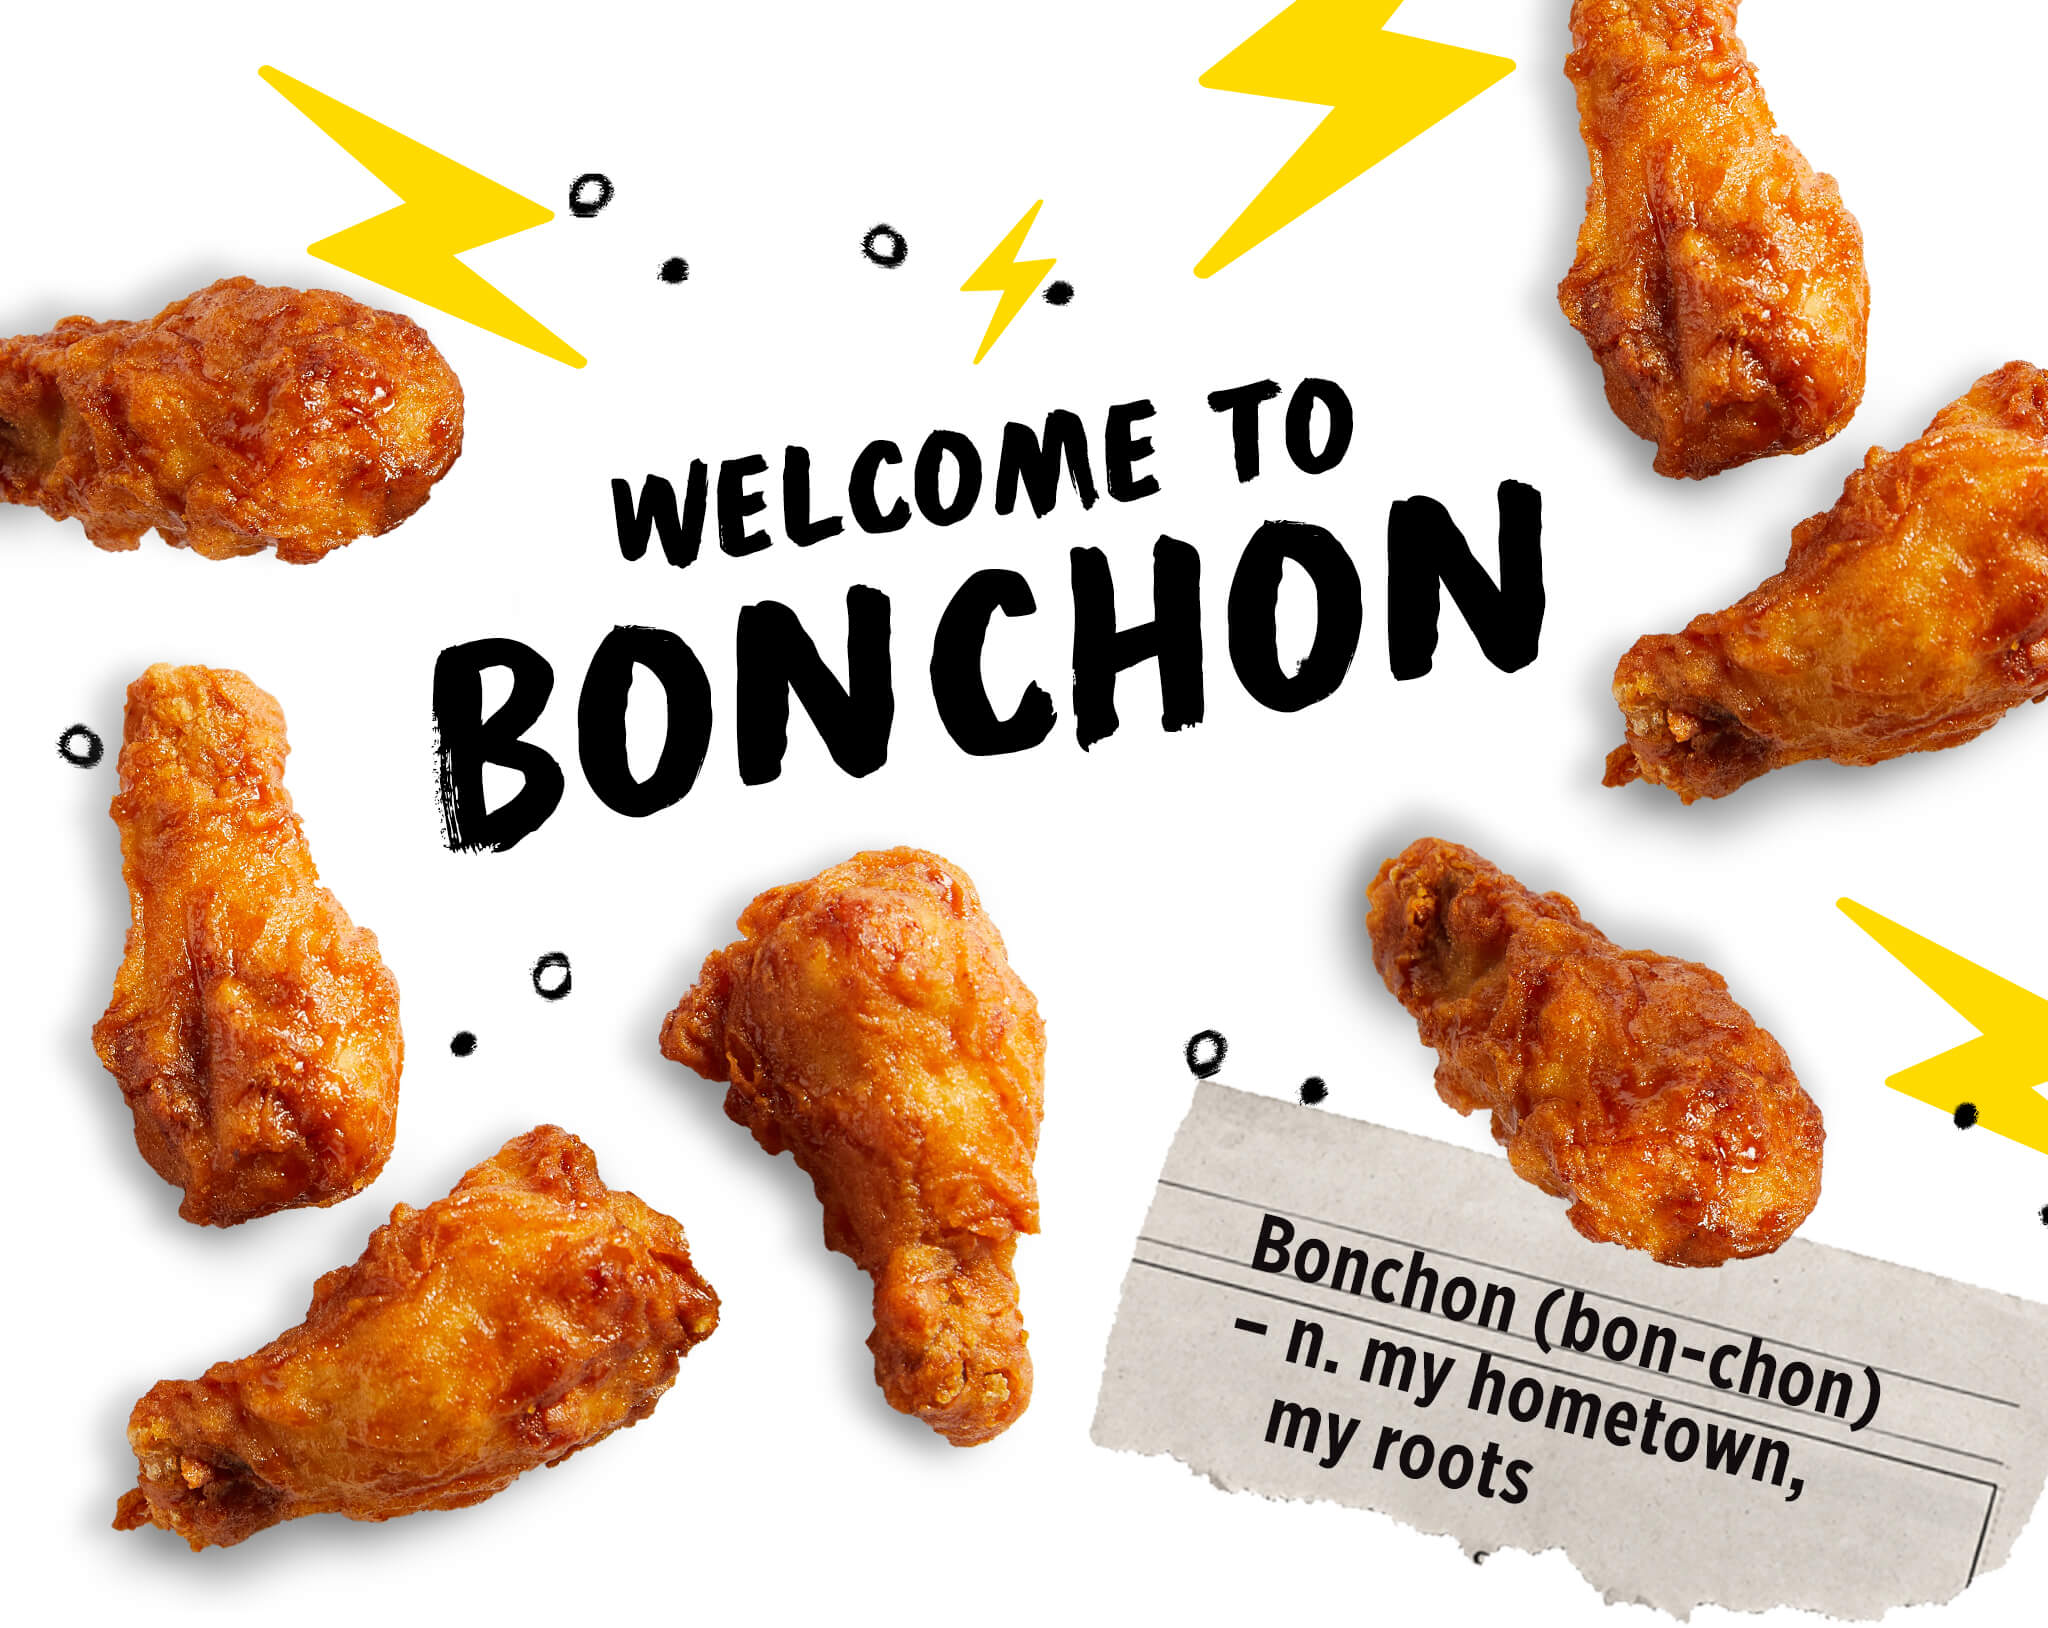 Welcome to Bonchon